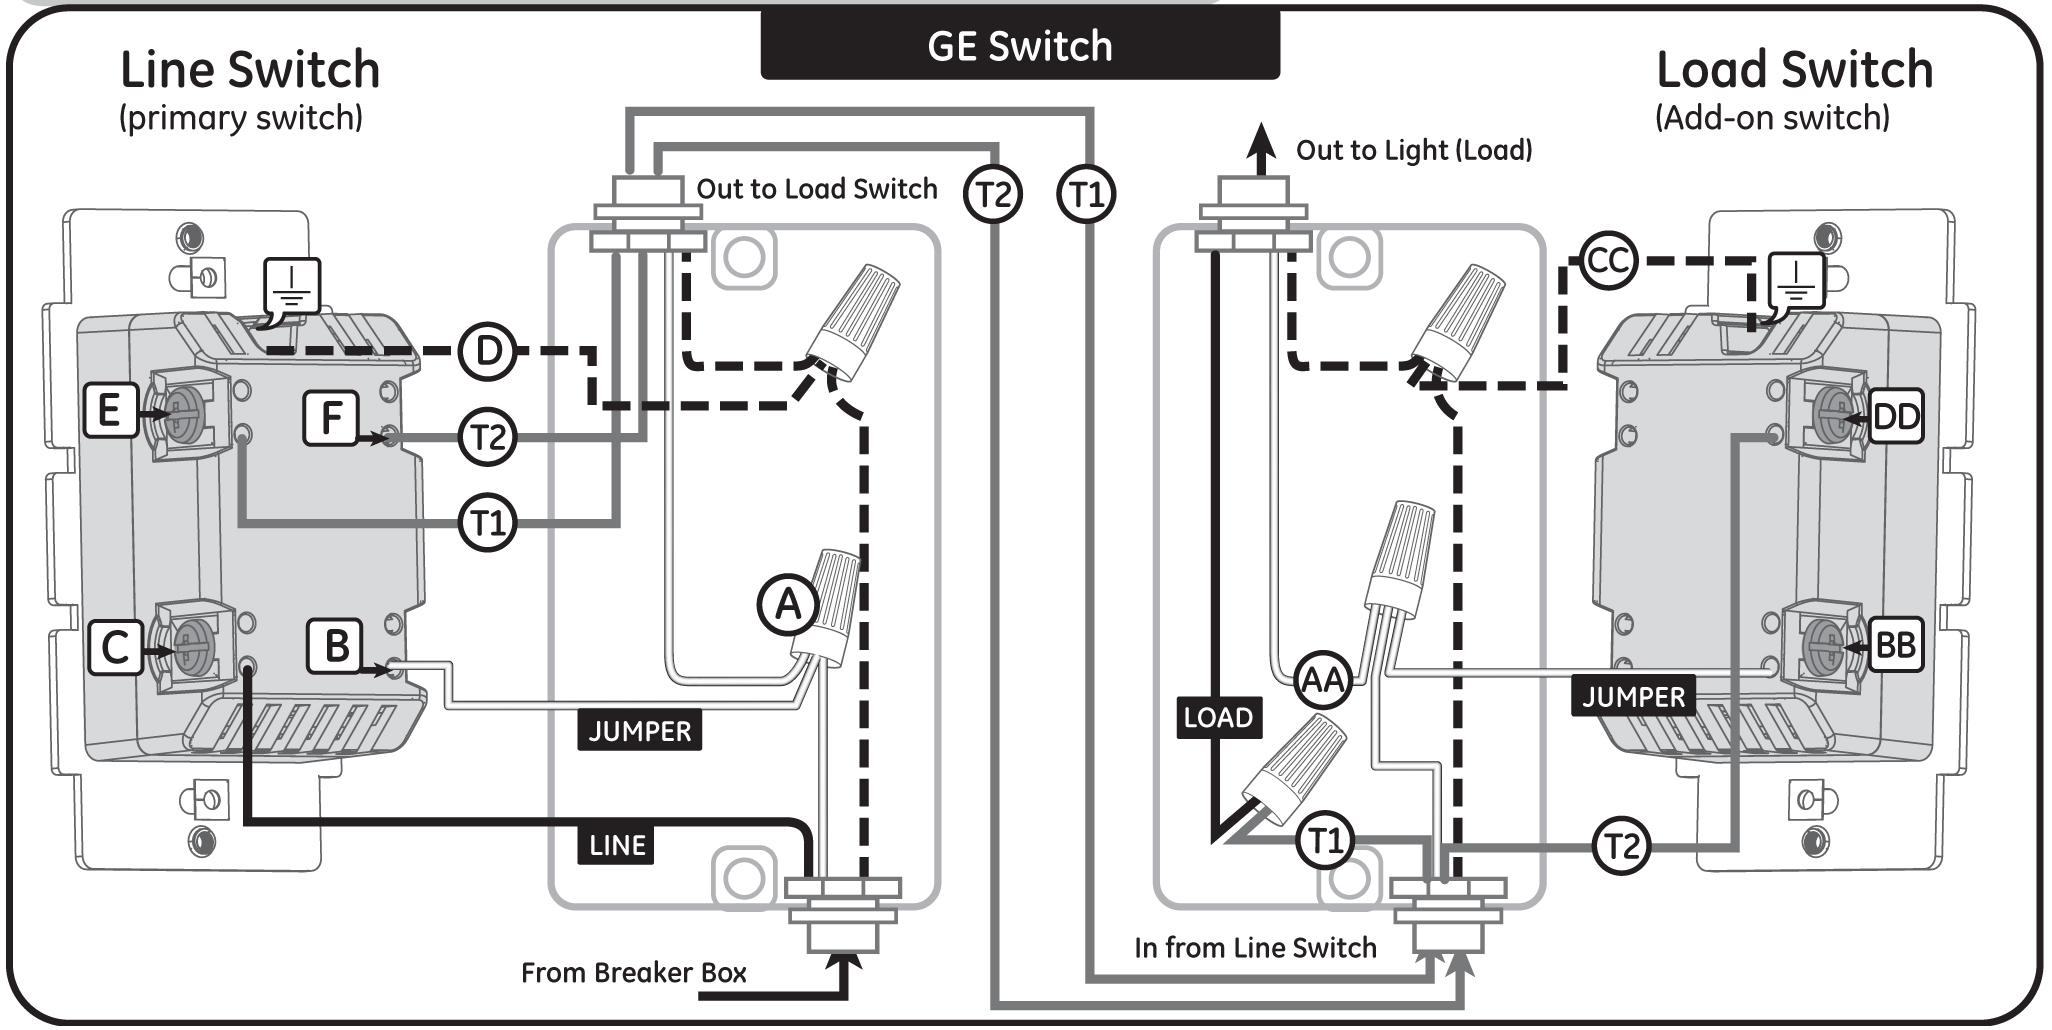 Ge Z Wave 3 Way Switch Wiring Diagram | Wiring Diagram - Ge Z Wave 3 Way Switch Wiring Diagram